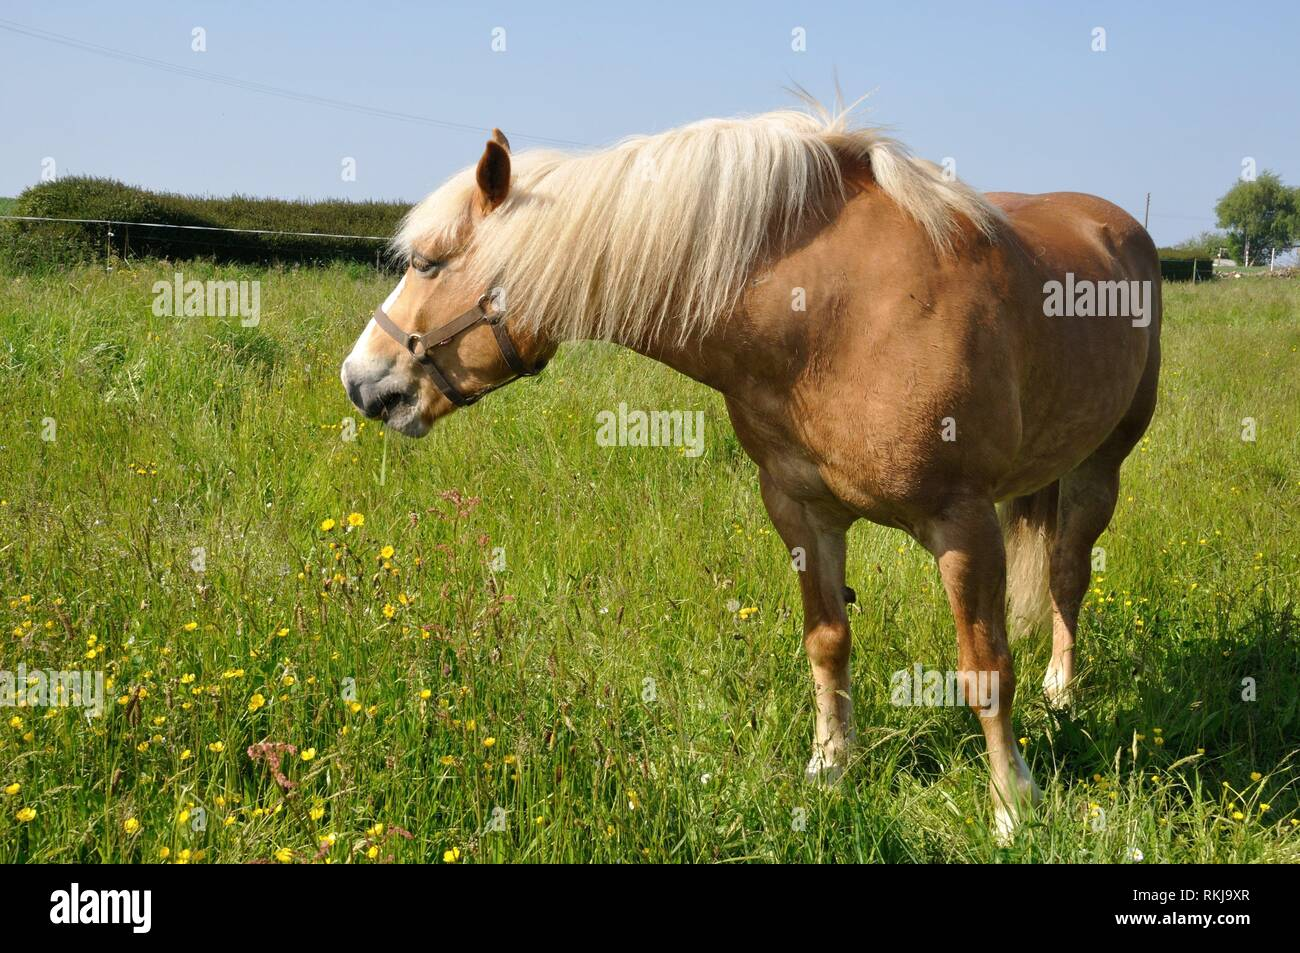 Horse in a meadow in Brittany. - Stock Image